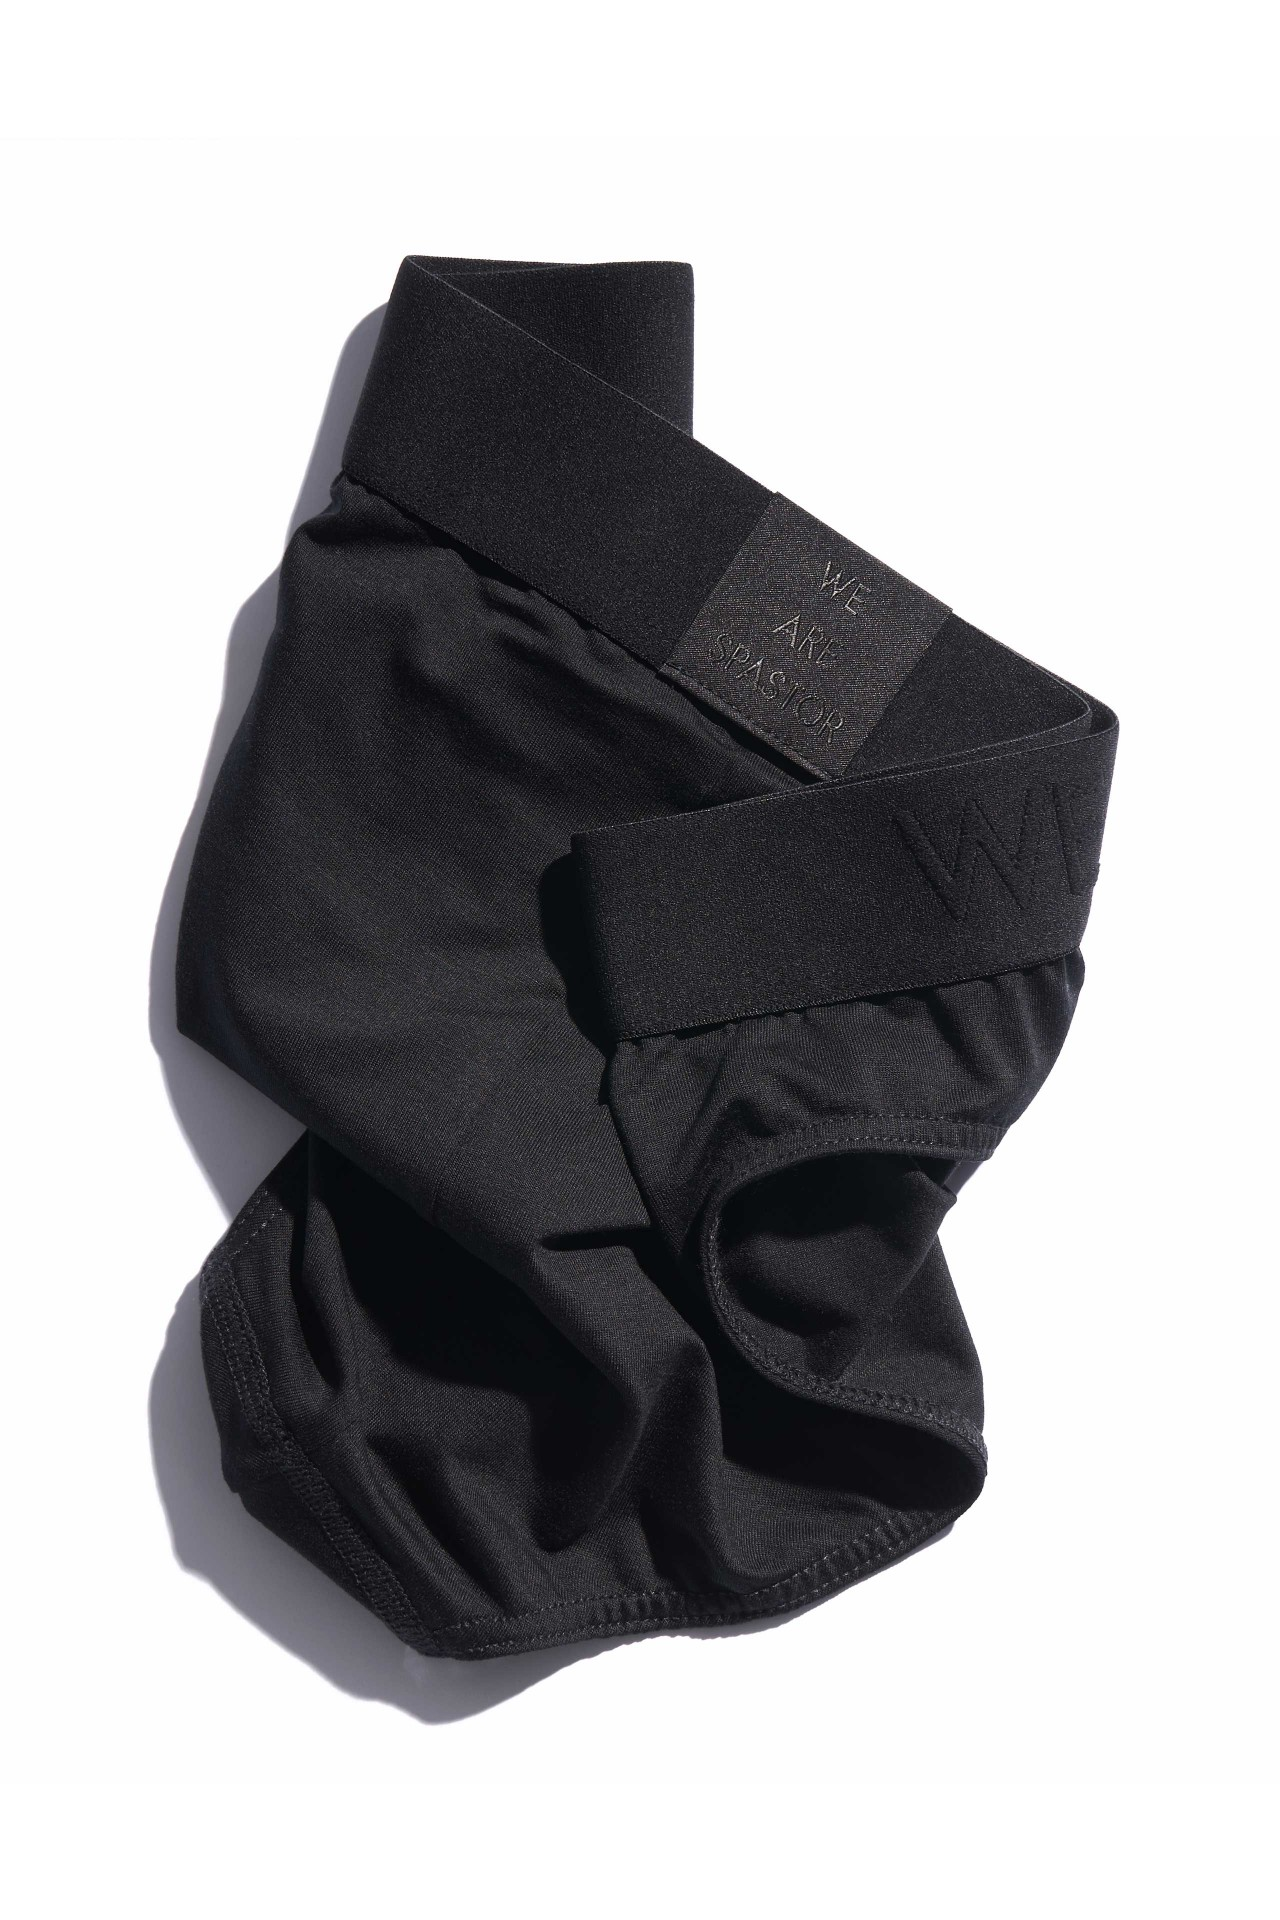 SHIA V1 BLACK - 1 PACK